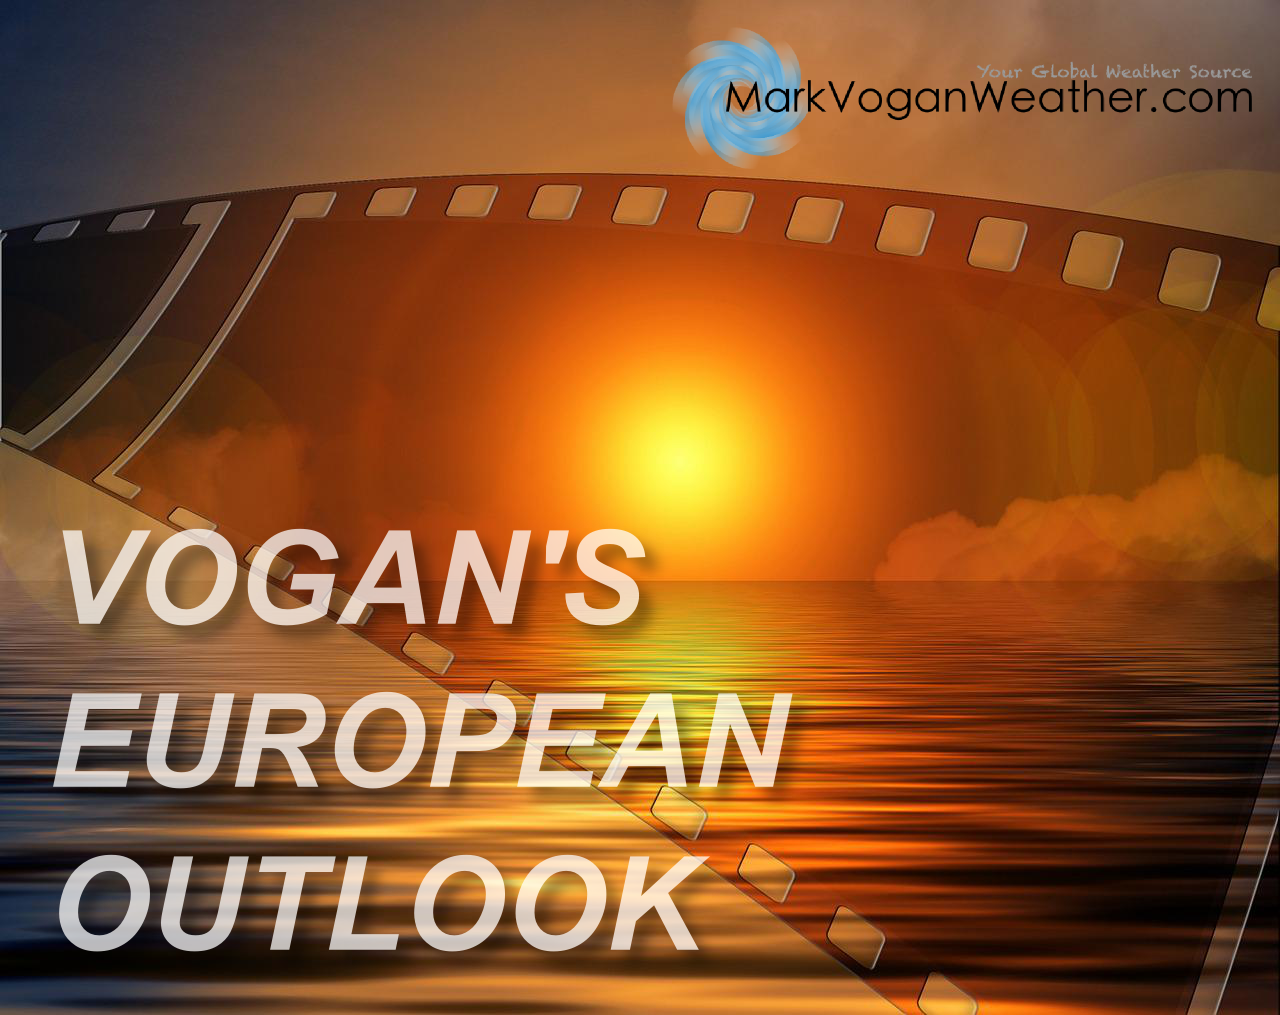 SUN 8 JUNE: VOGAN'S EUROPEAN OUTLOOK